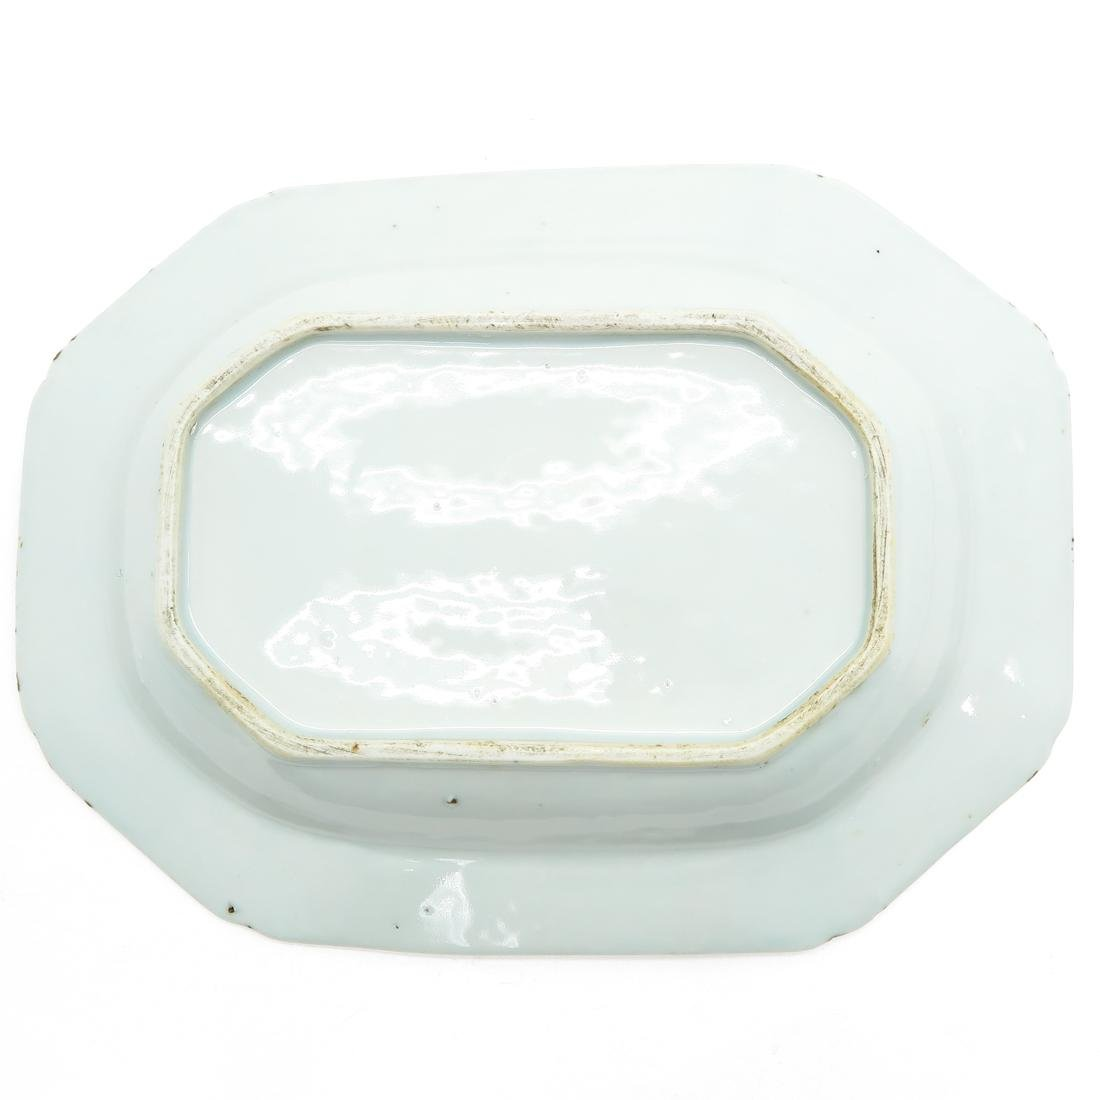 Serving Plate - 2